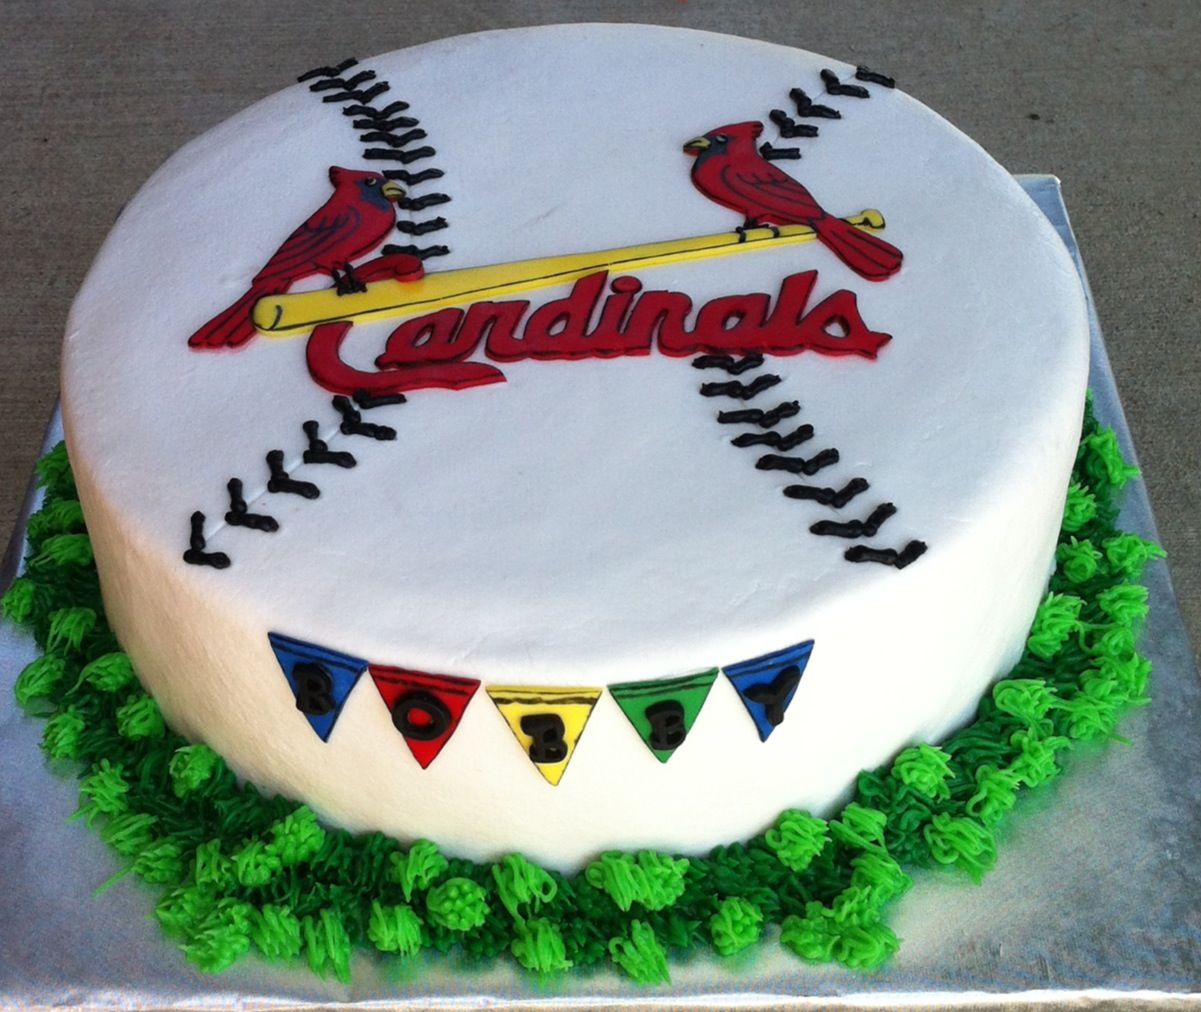 Cake Dreams St Louis Cardinals Birthday Cake